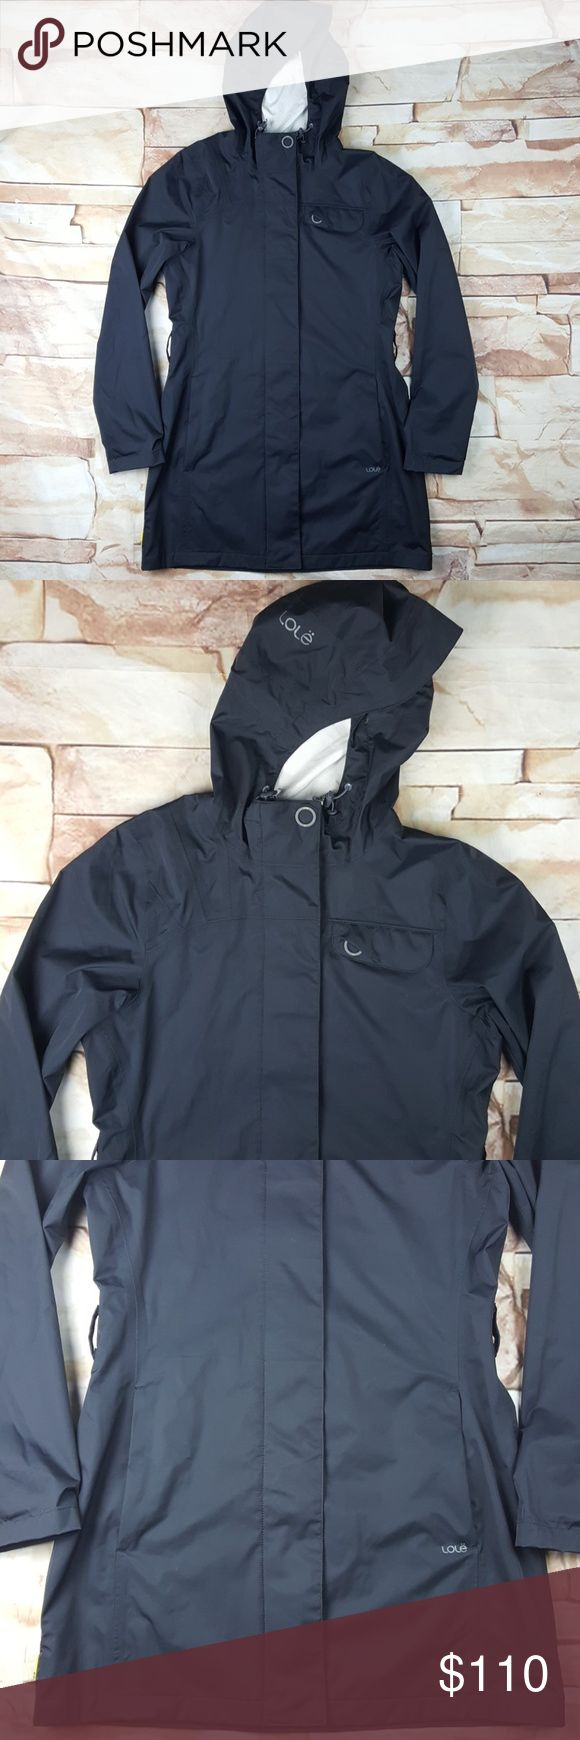 Lole Waterproof Hooded Rain Jacket Size Small Size Small Lole Waterproof Hooded Black Rain Jacket. Jacket is NEAR NEW, there are absolutely no stains, markings, rips, tears or flaws OF ANY KIND. This jacket is very clean. (Box 12) Lole Jackets & Coats